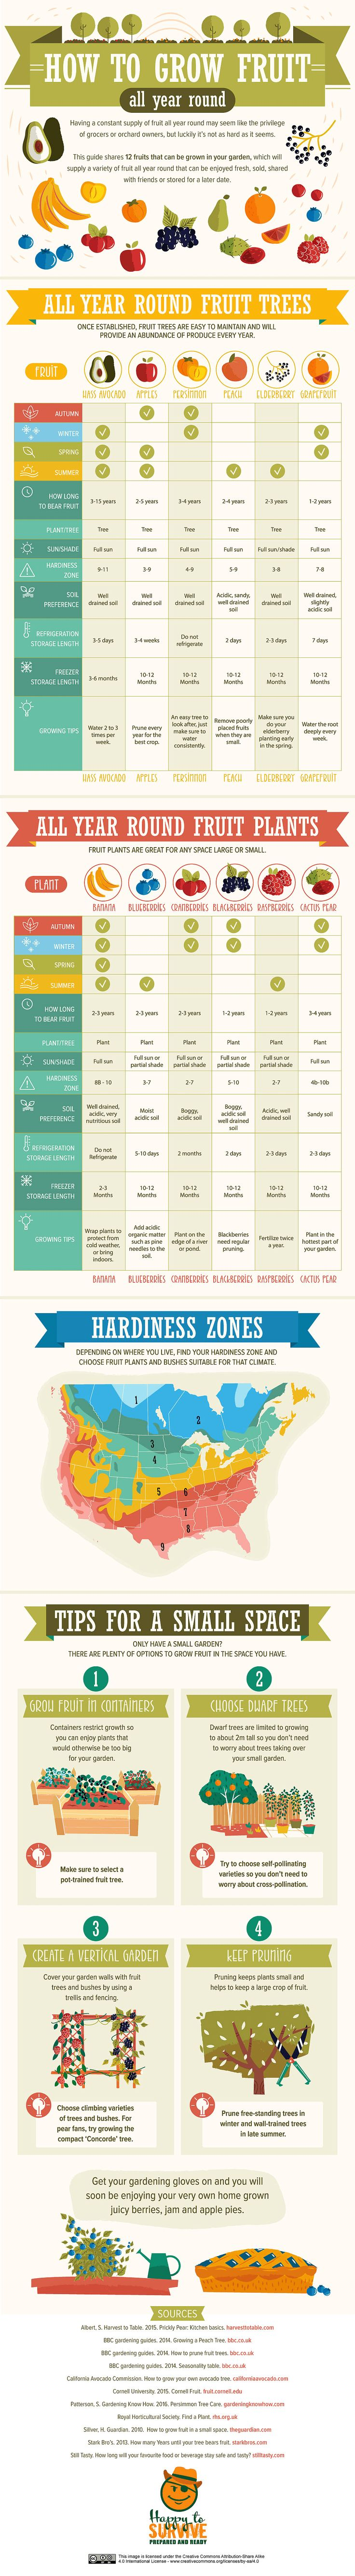 The Ultimate Fruit Gardening Guide in Handy Infographic Form